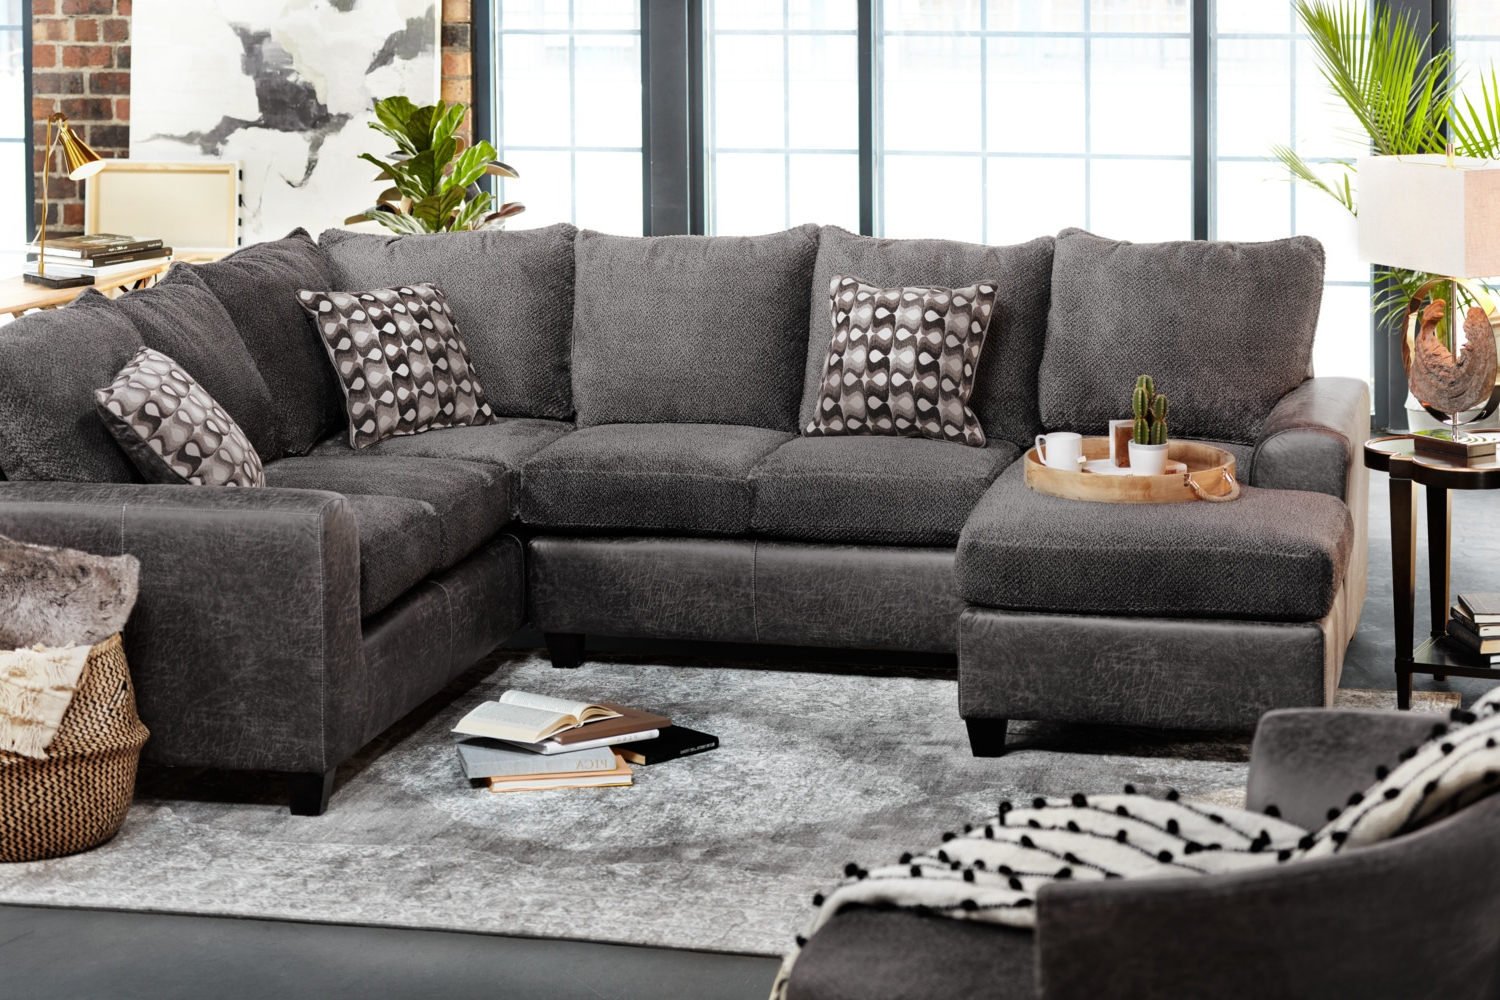 Delano 2 Piece Sectionals With Laf Oversized Chaise Inside Most Current 3 Piece Sectional – Locsbyhelenelorasa (View 19 of 20)